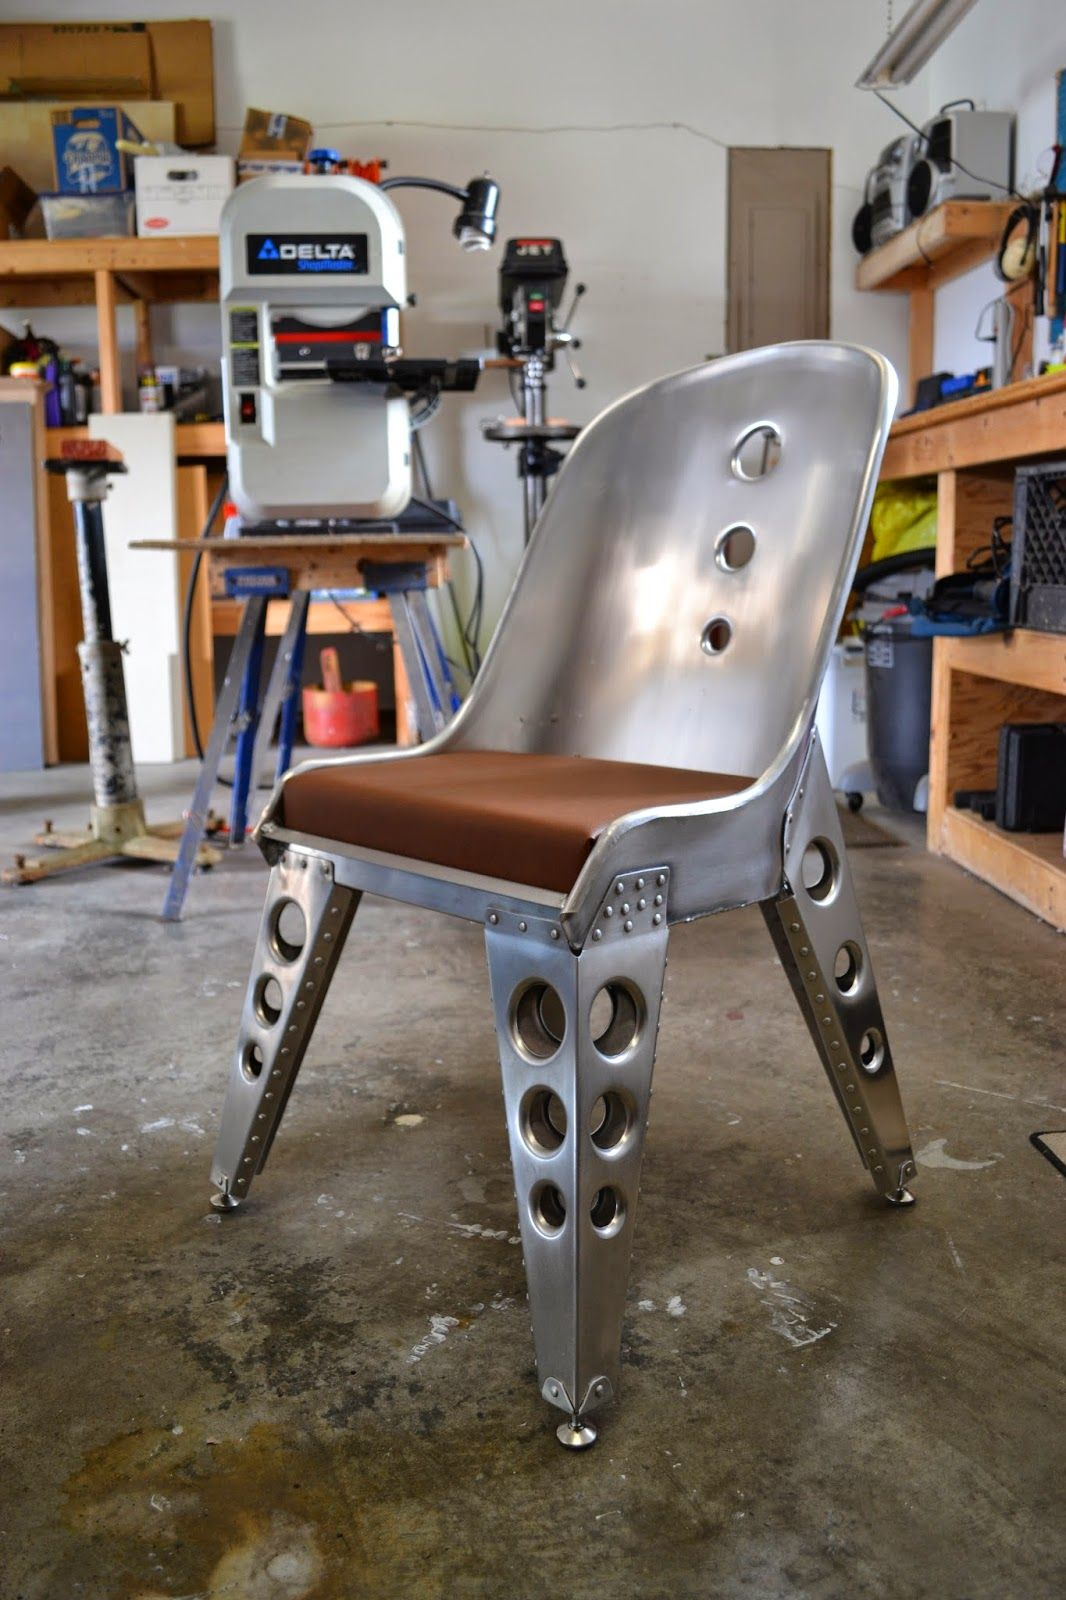 Aviation Inspired Aluminum Riveted Bomber Seat Chair Furniture - 20 unique pieces of furniture made from recycled airplane parts